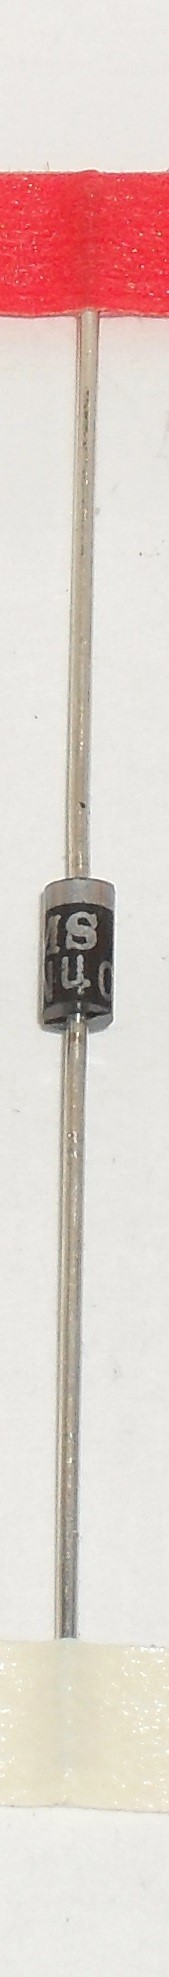 1N4001 Diode, Standard Recovery Rectifier, DO-41 Package